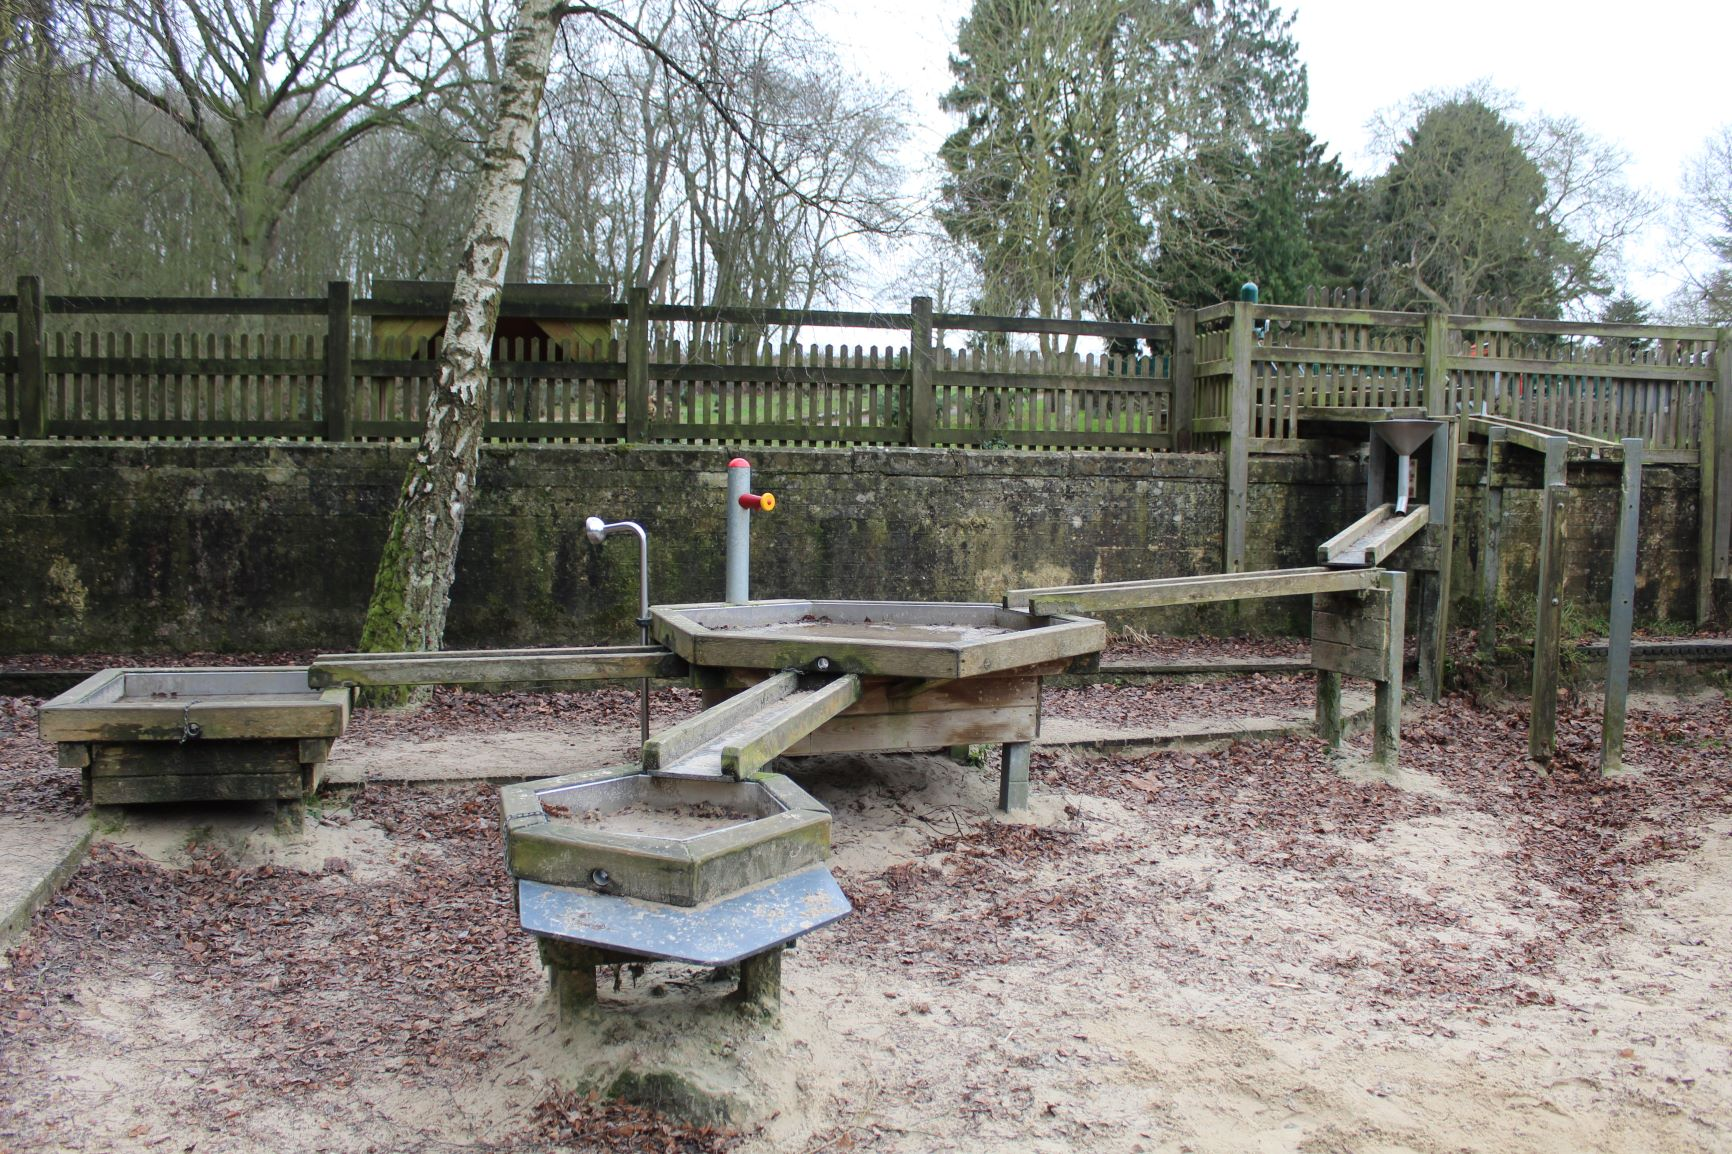 Sywell country park